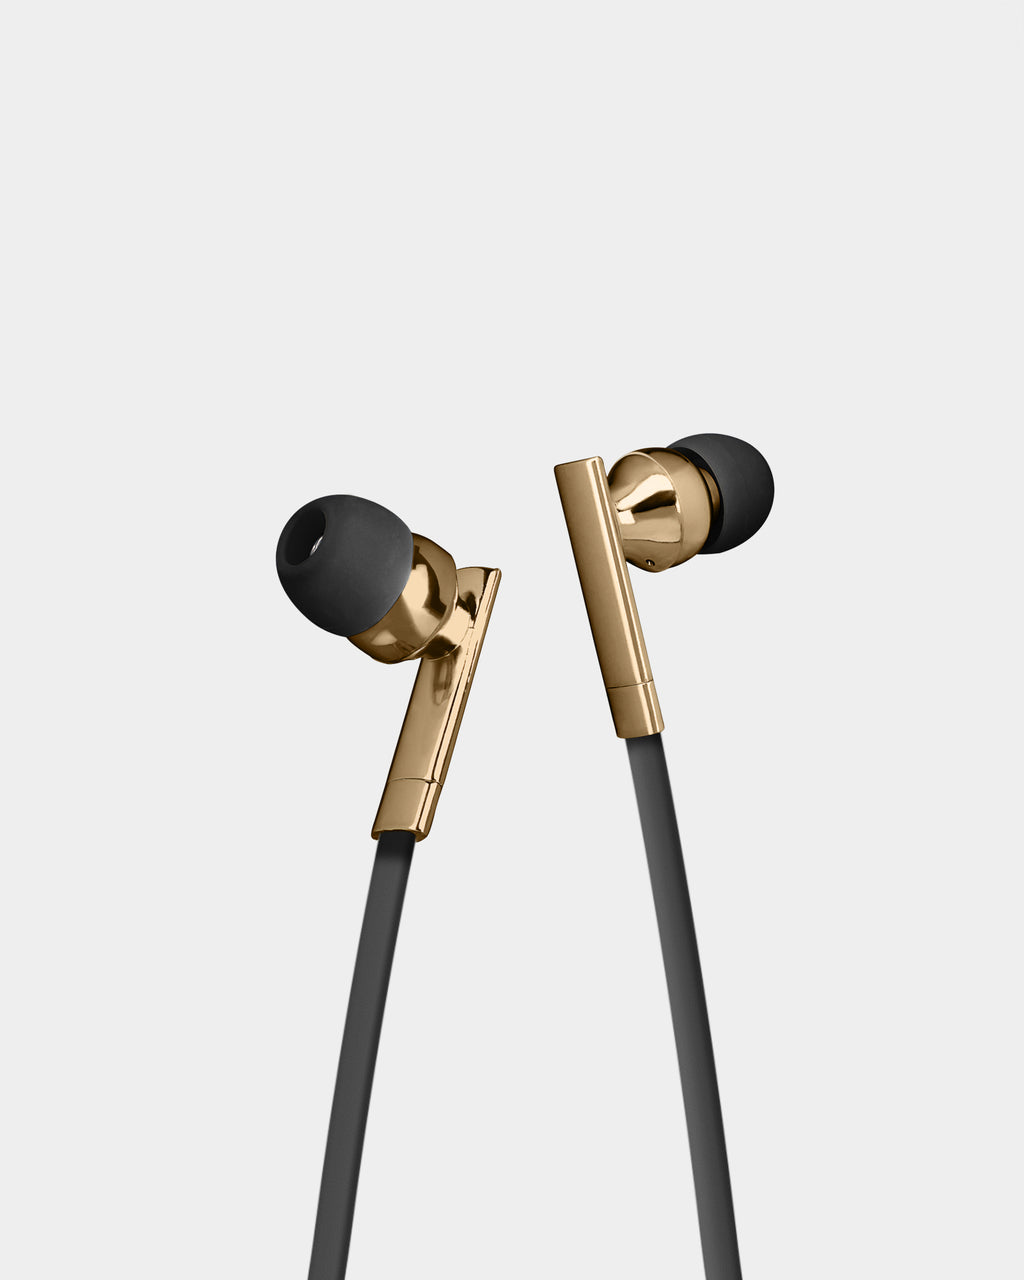 BBEBB01 - Bluetooth Earbuds With Mic - accessories - fashion tech - In a black and gold, these earbuds fit comfortably and features a mic.